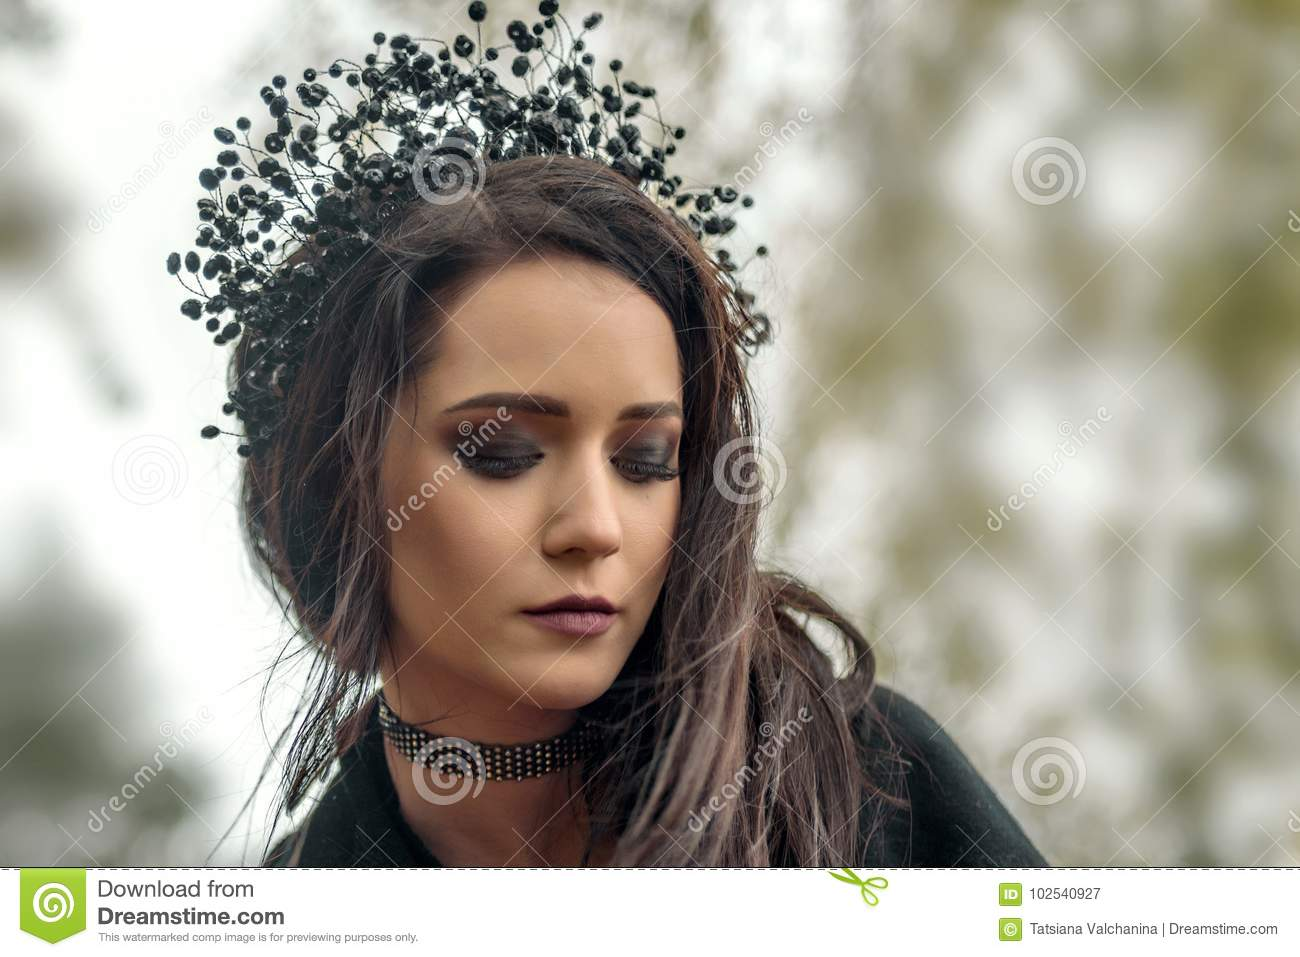 close up portrait of a young girl in the image of the black queen witch in a black crown tiara